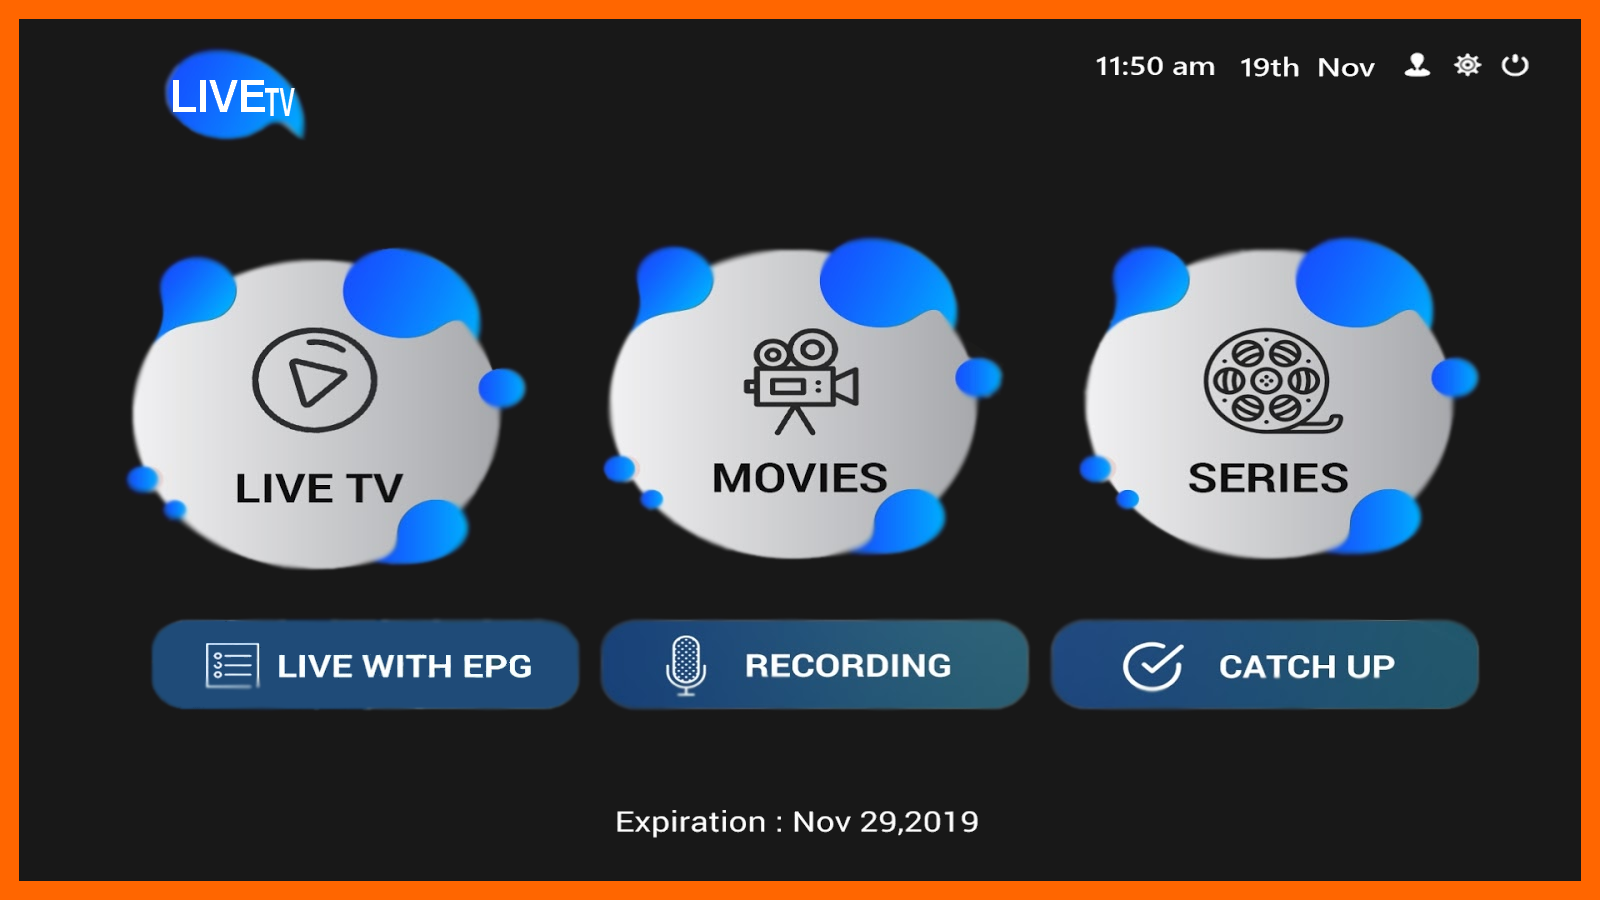 NEW!!! FREE IPTV APPLICATION LIVE FOR ANDROID + ACTIVATION